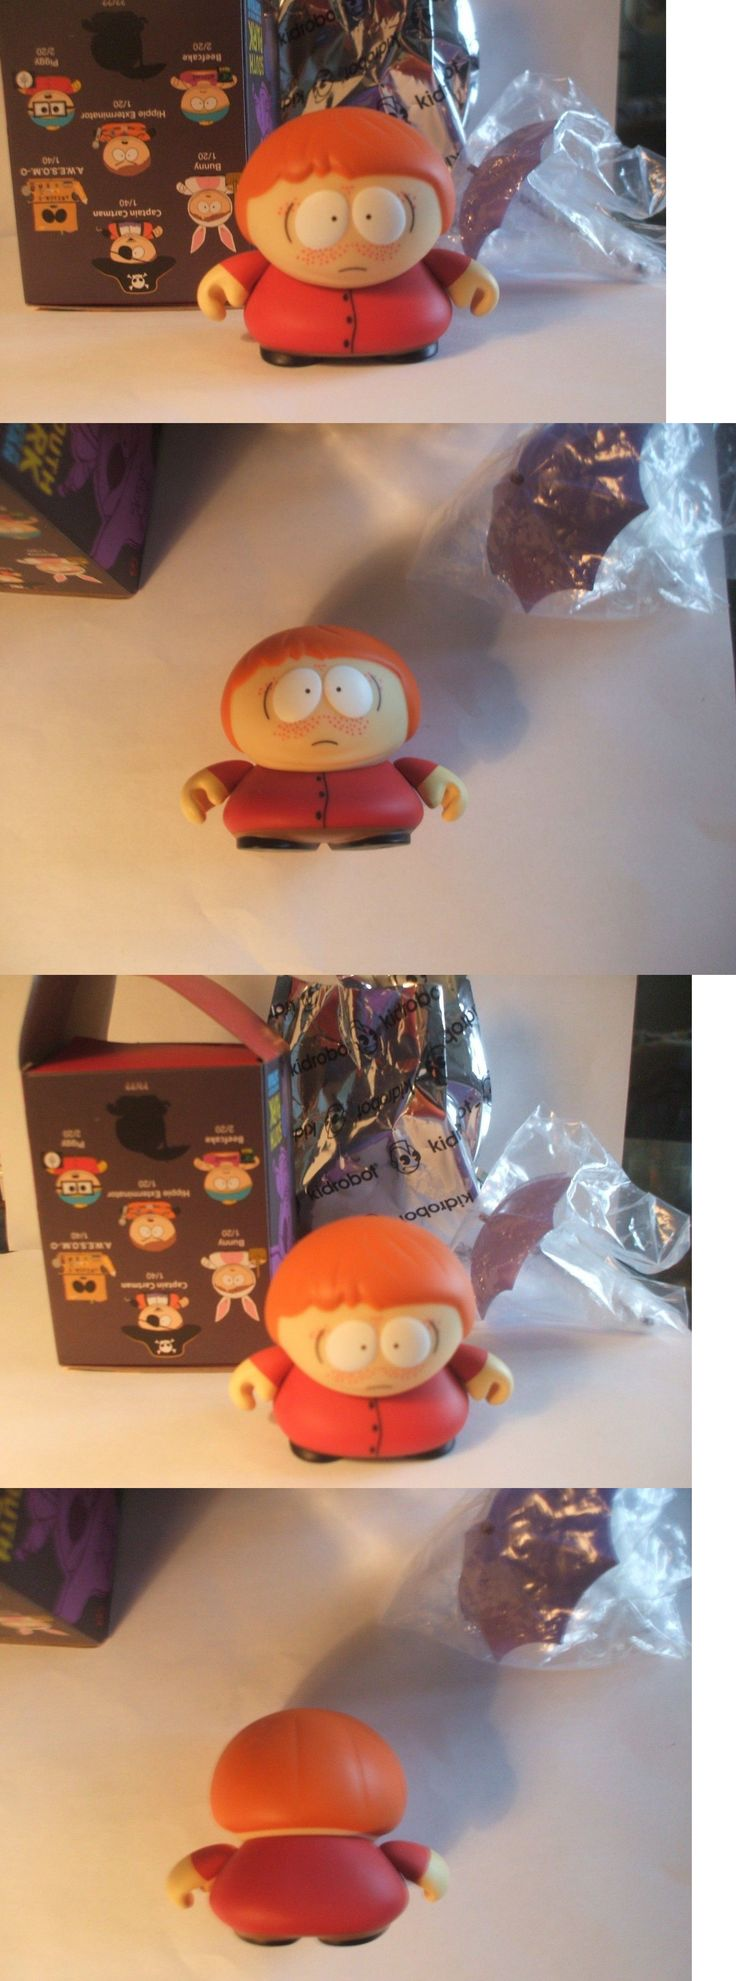 South Park 20918: Gingervitus South Park Kidrobot Many Faces Of Cartman Chase Series 2 Ginger Rare -> BUY IT NOW ONLY: $279.79 on eBay!